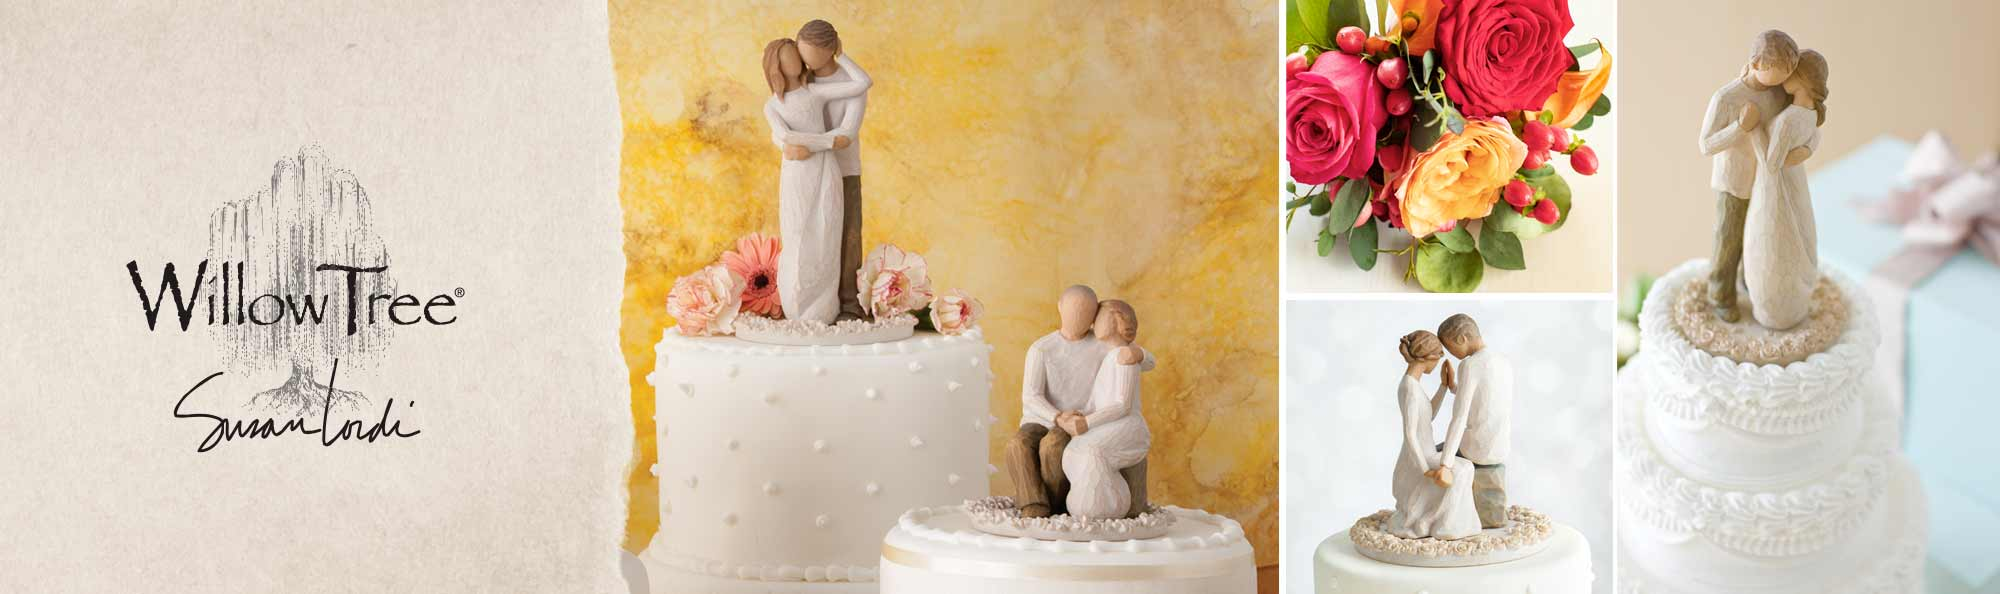 Willow Tree by Susan Lordi. Hand carved figurines of couples on top of wedding cakes.